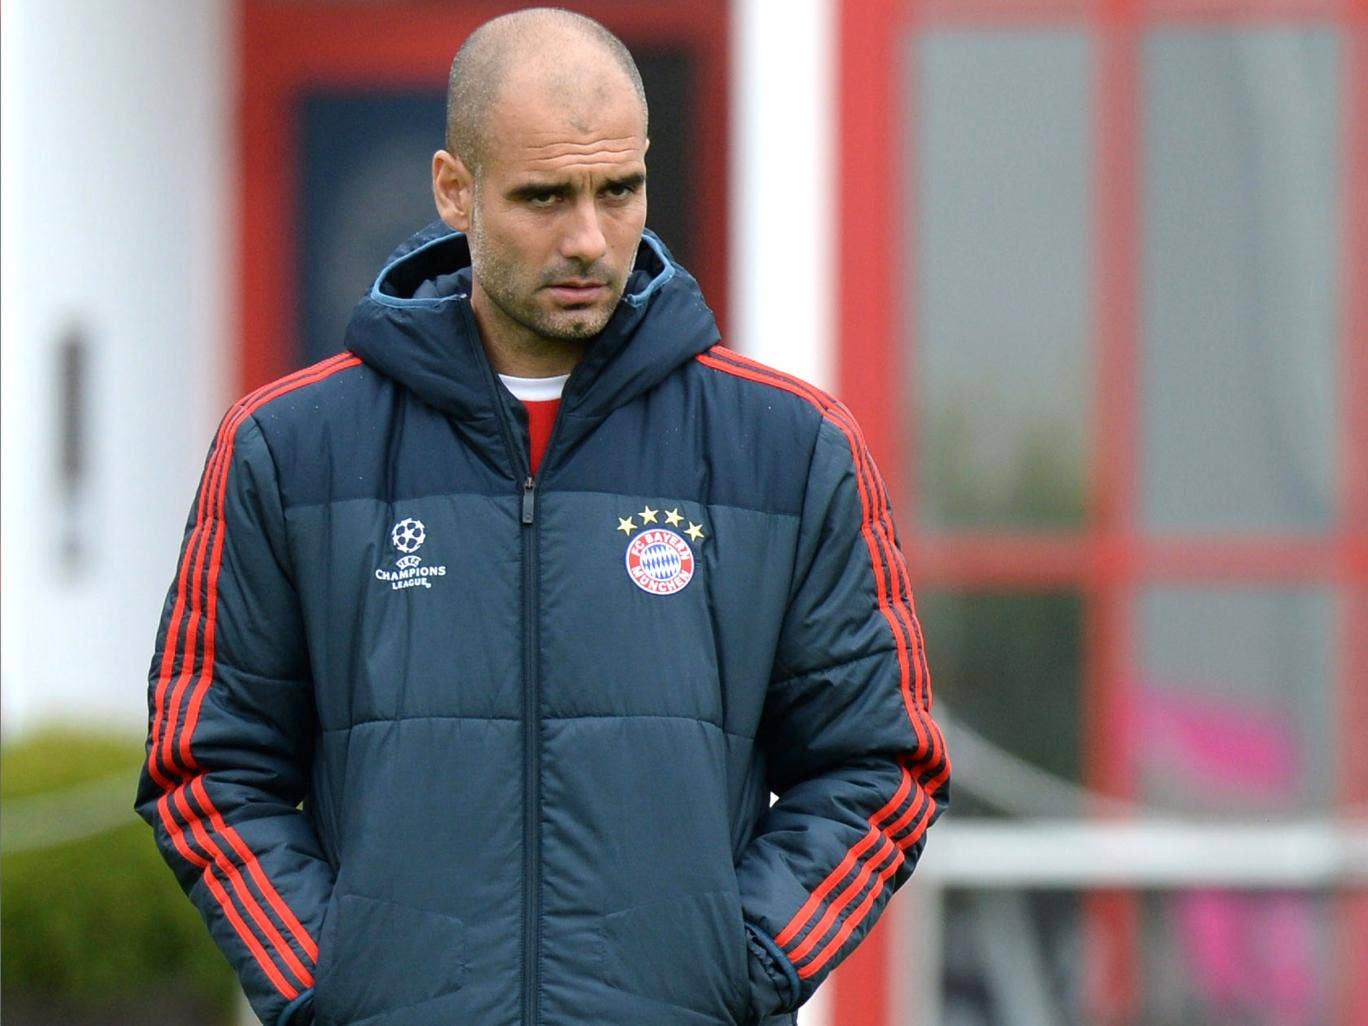 Pep Guardiola is under pressure to at least match last season's success